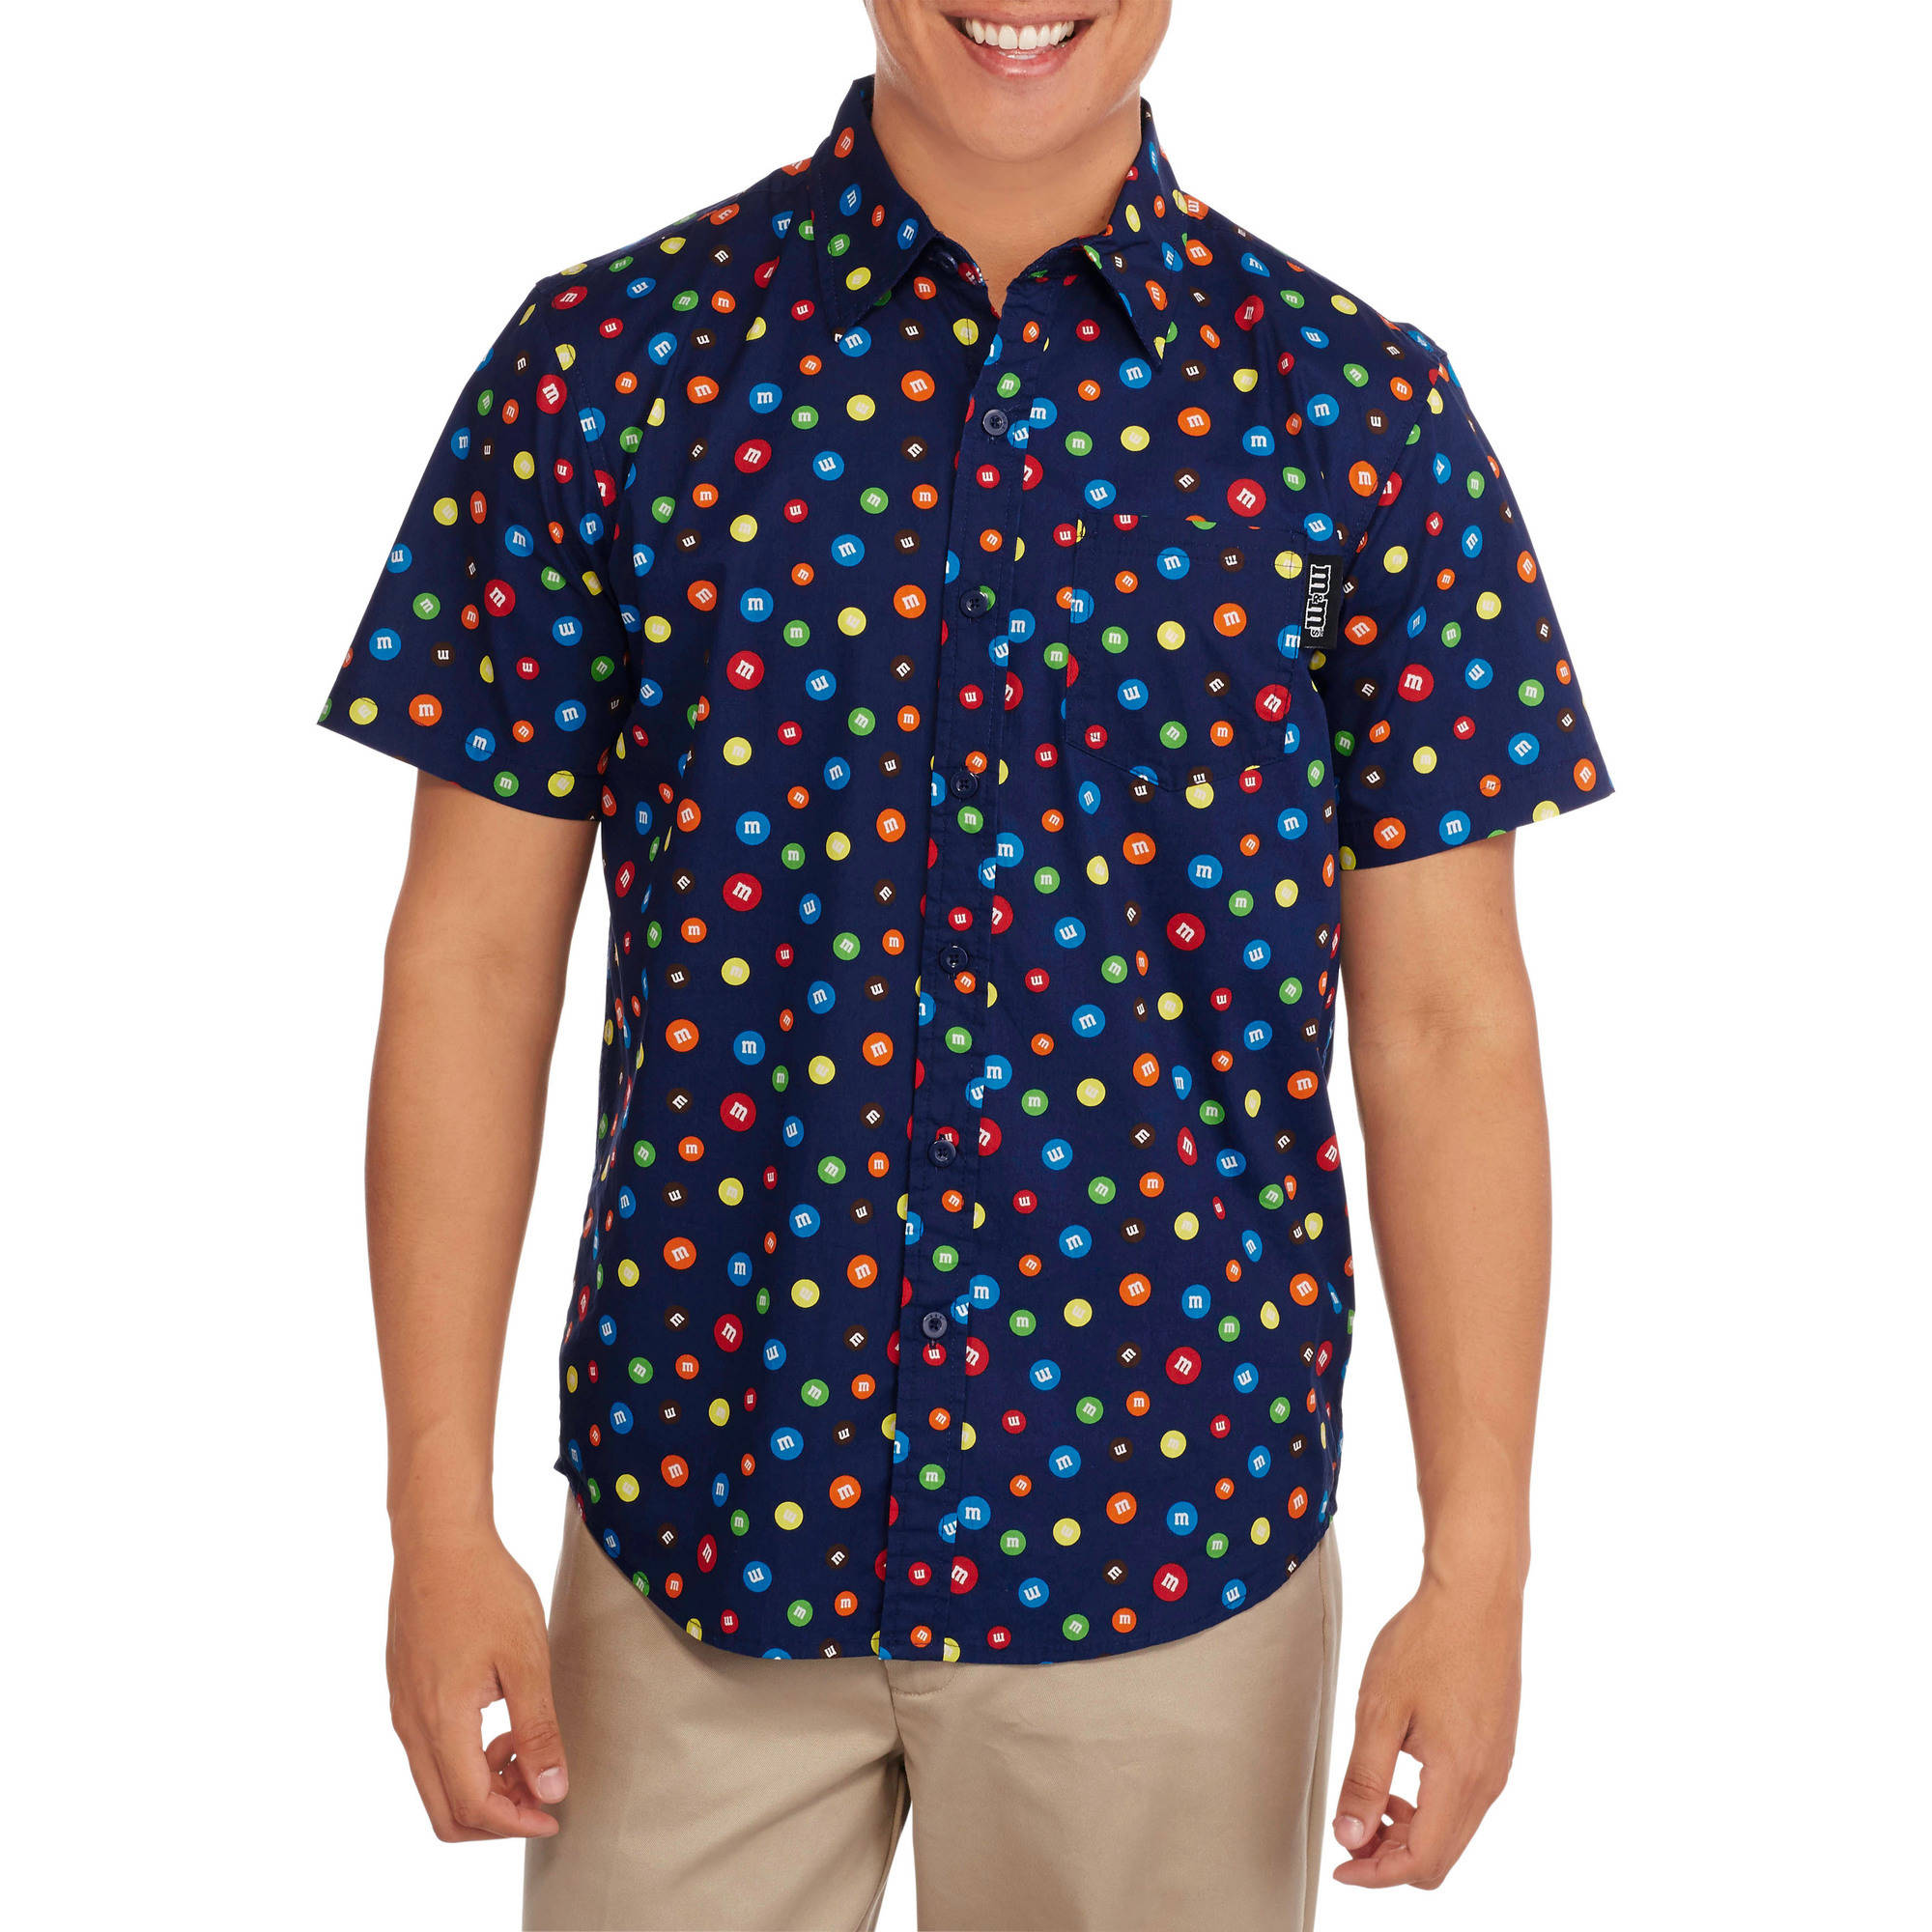 M&M's Big Men's Short Sleeve Woven Shirt